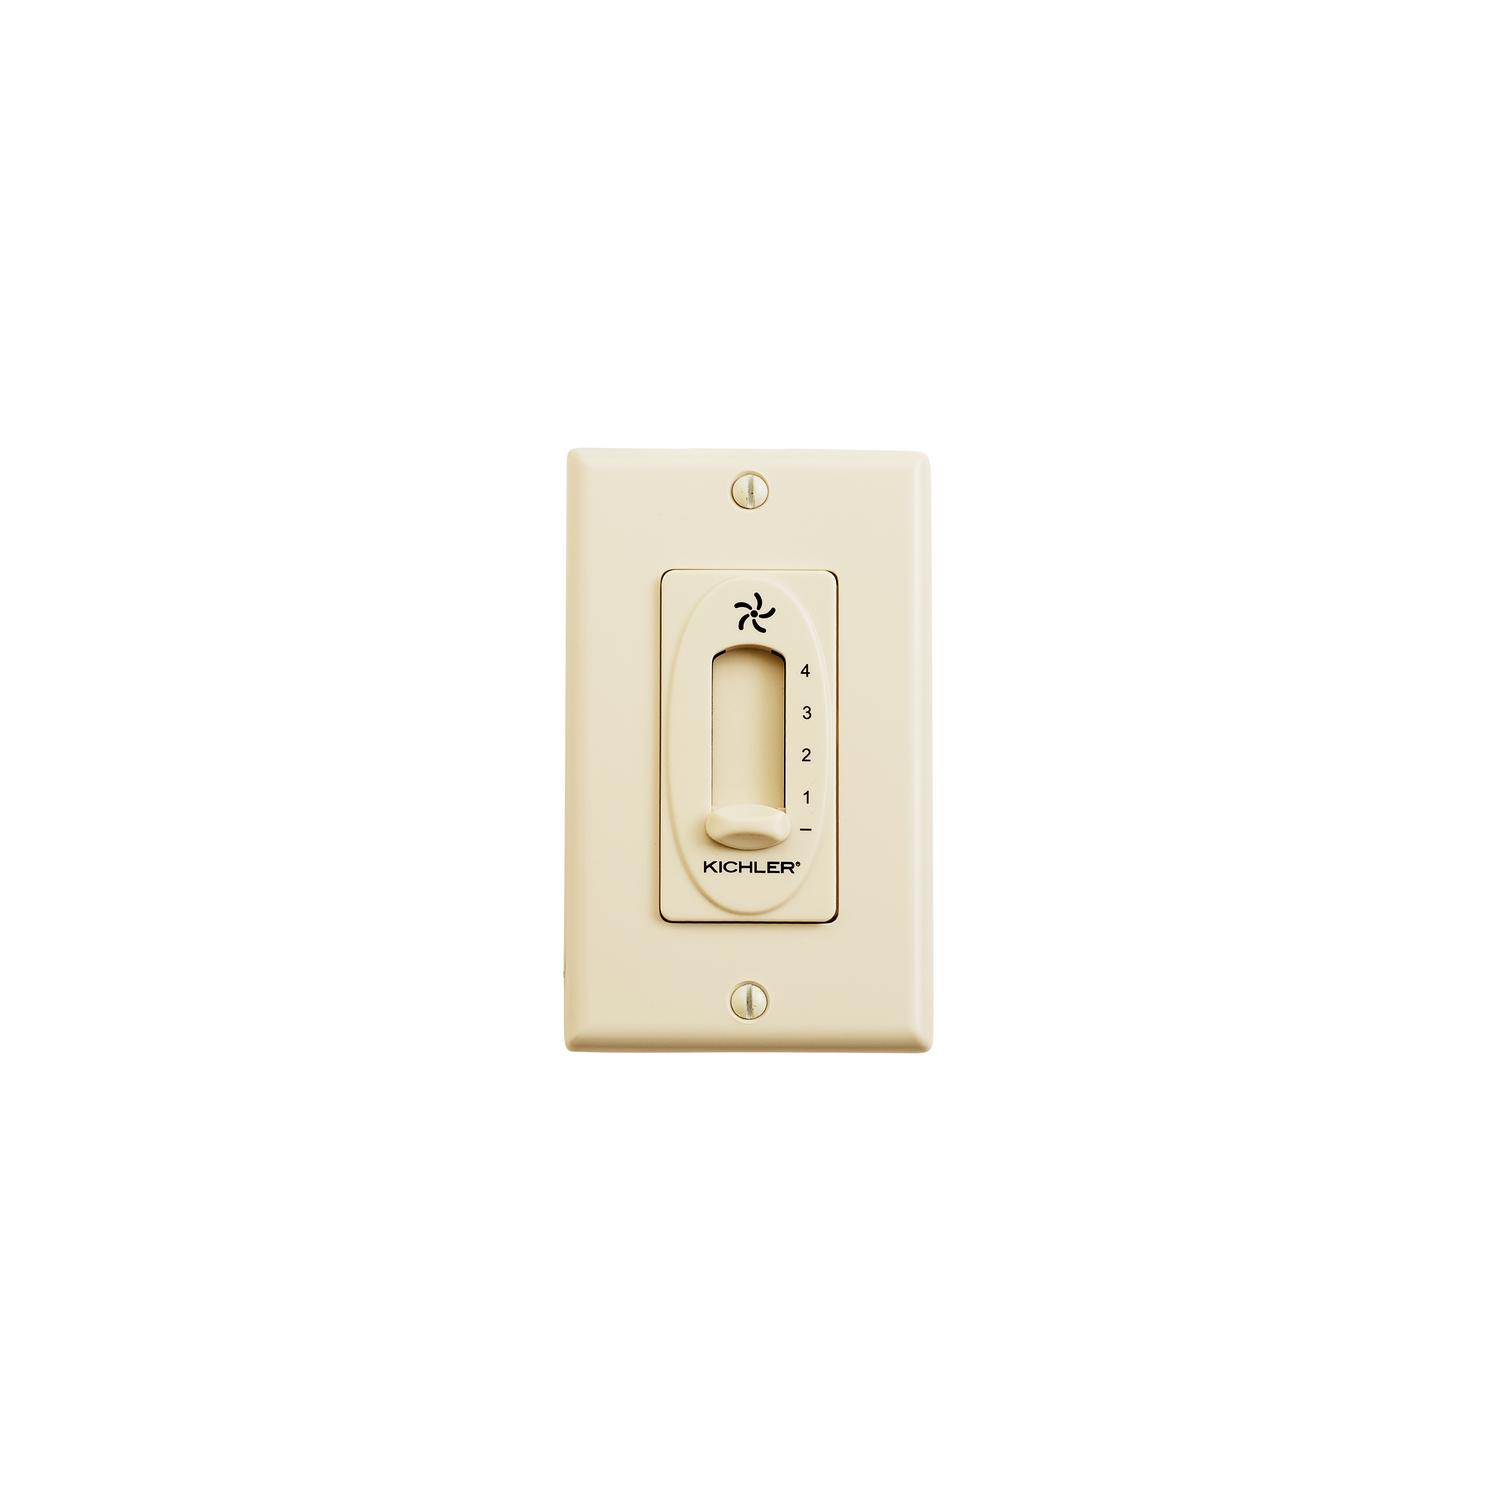 4 Speed Fan Slide Control from the Accessory collection by Kichler 337012IV